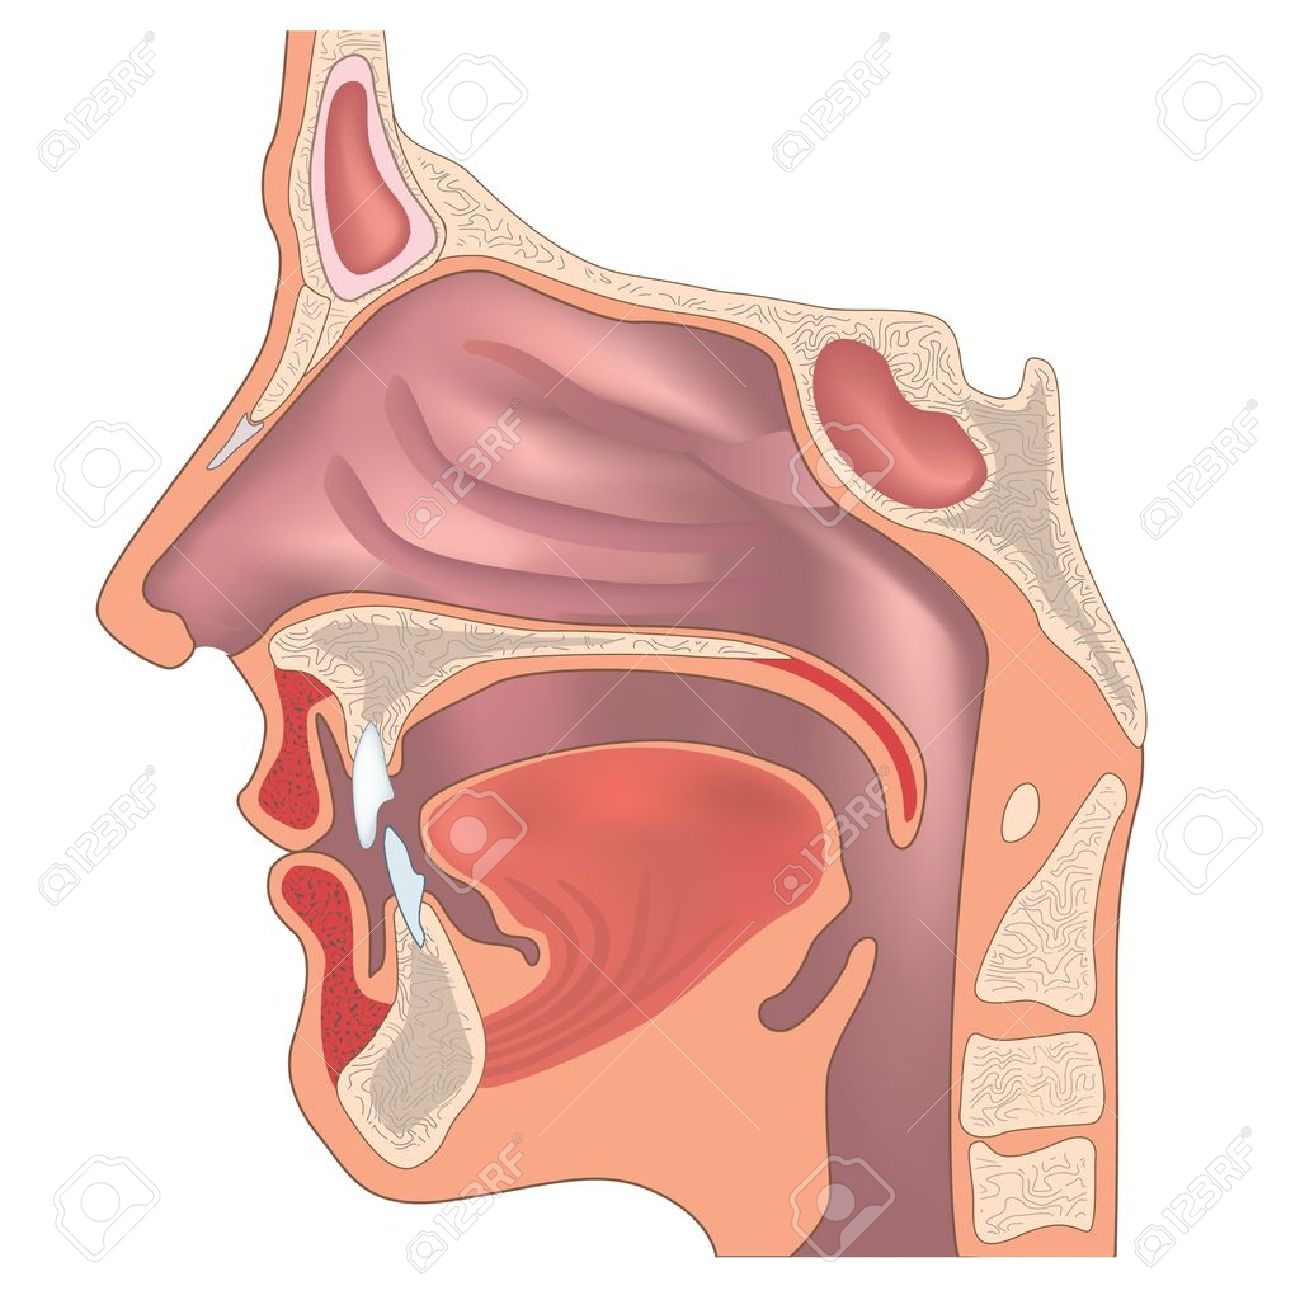 Anatomy of the nose and throat